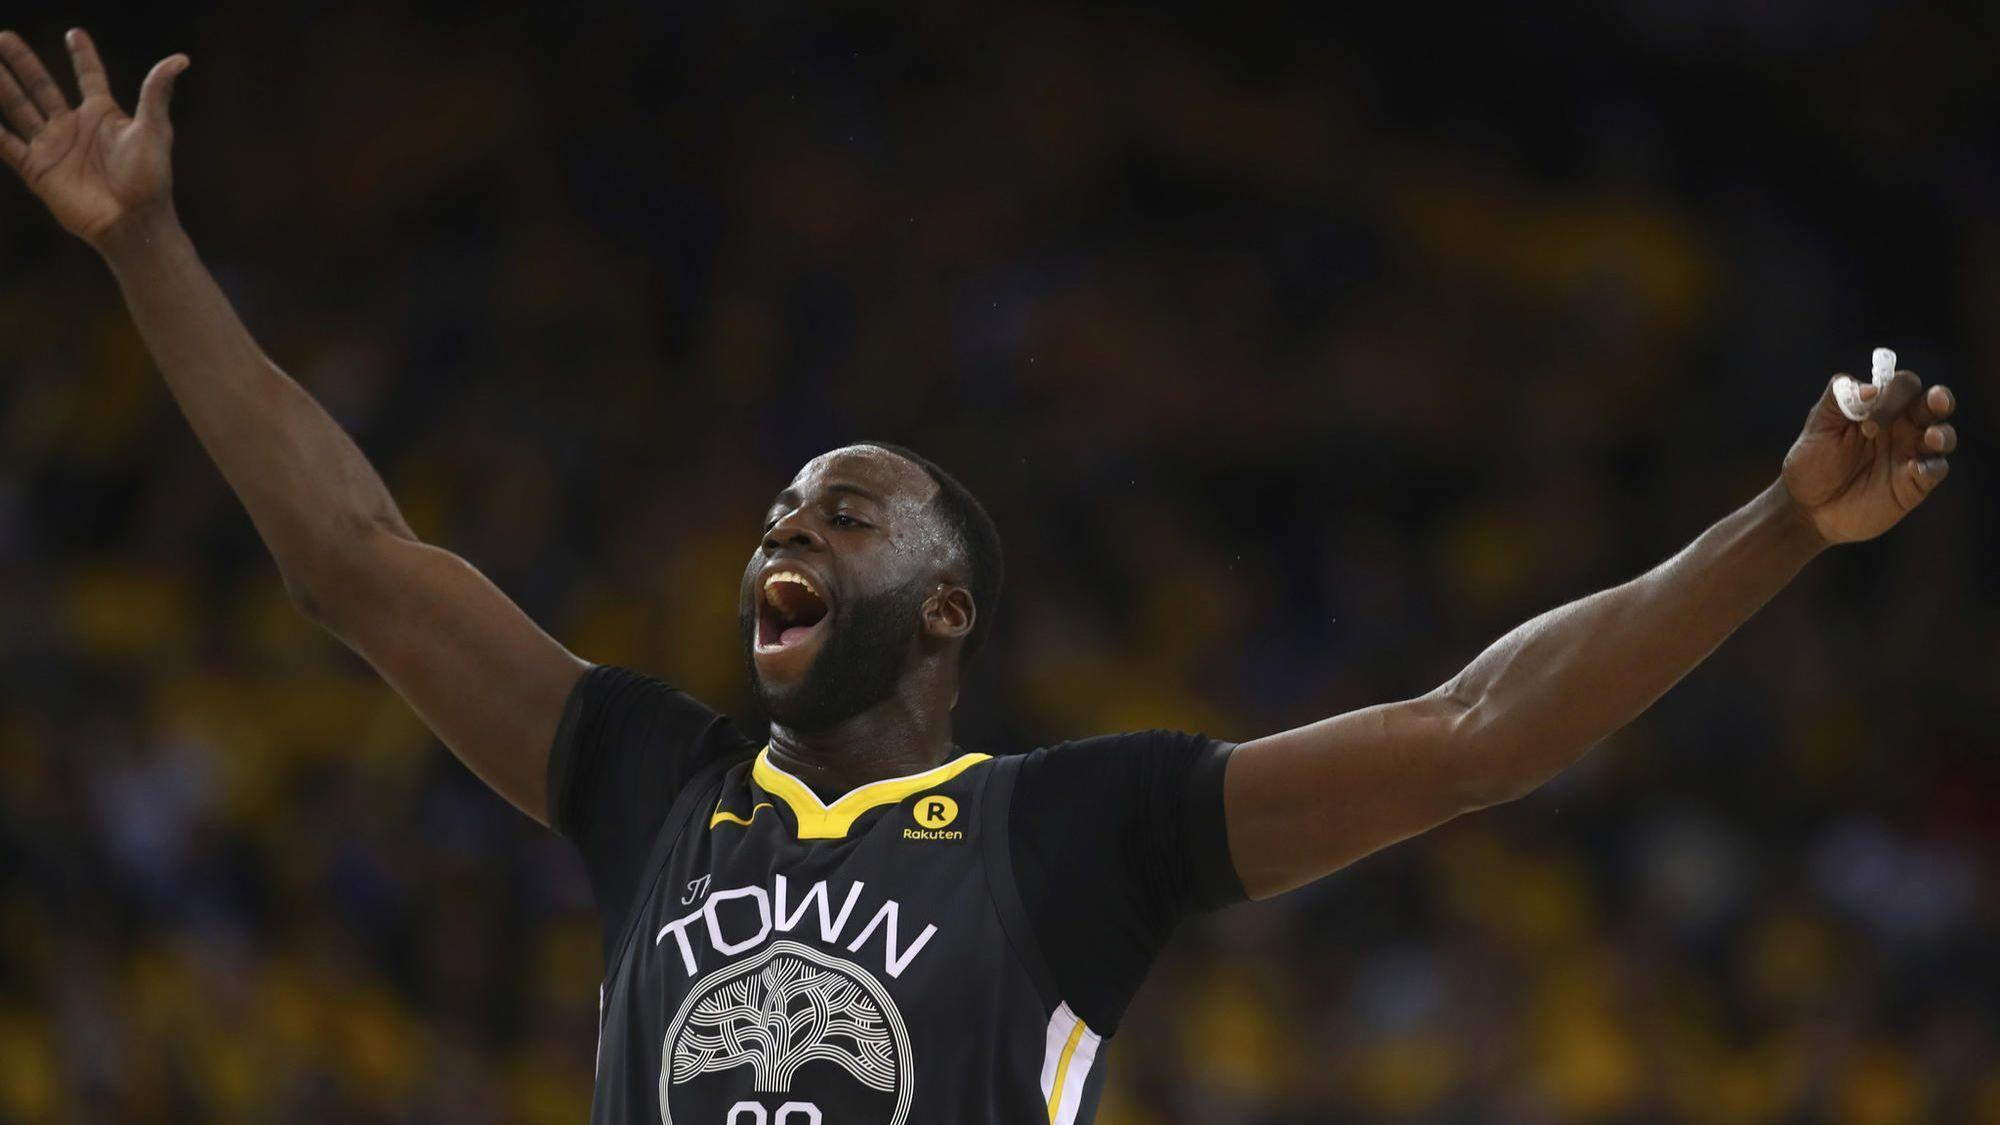 The Draymond Green Flagrant Foul Tracker Is Underway